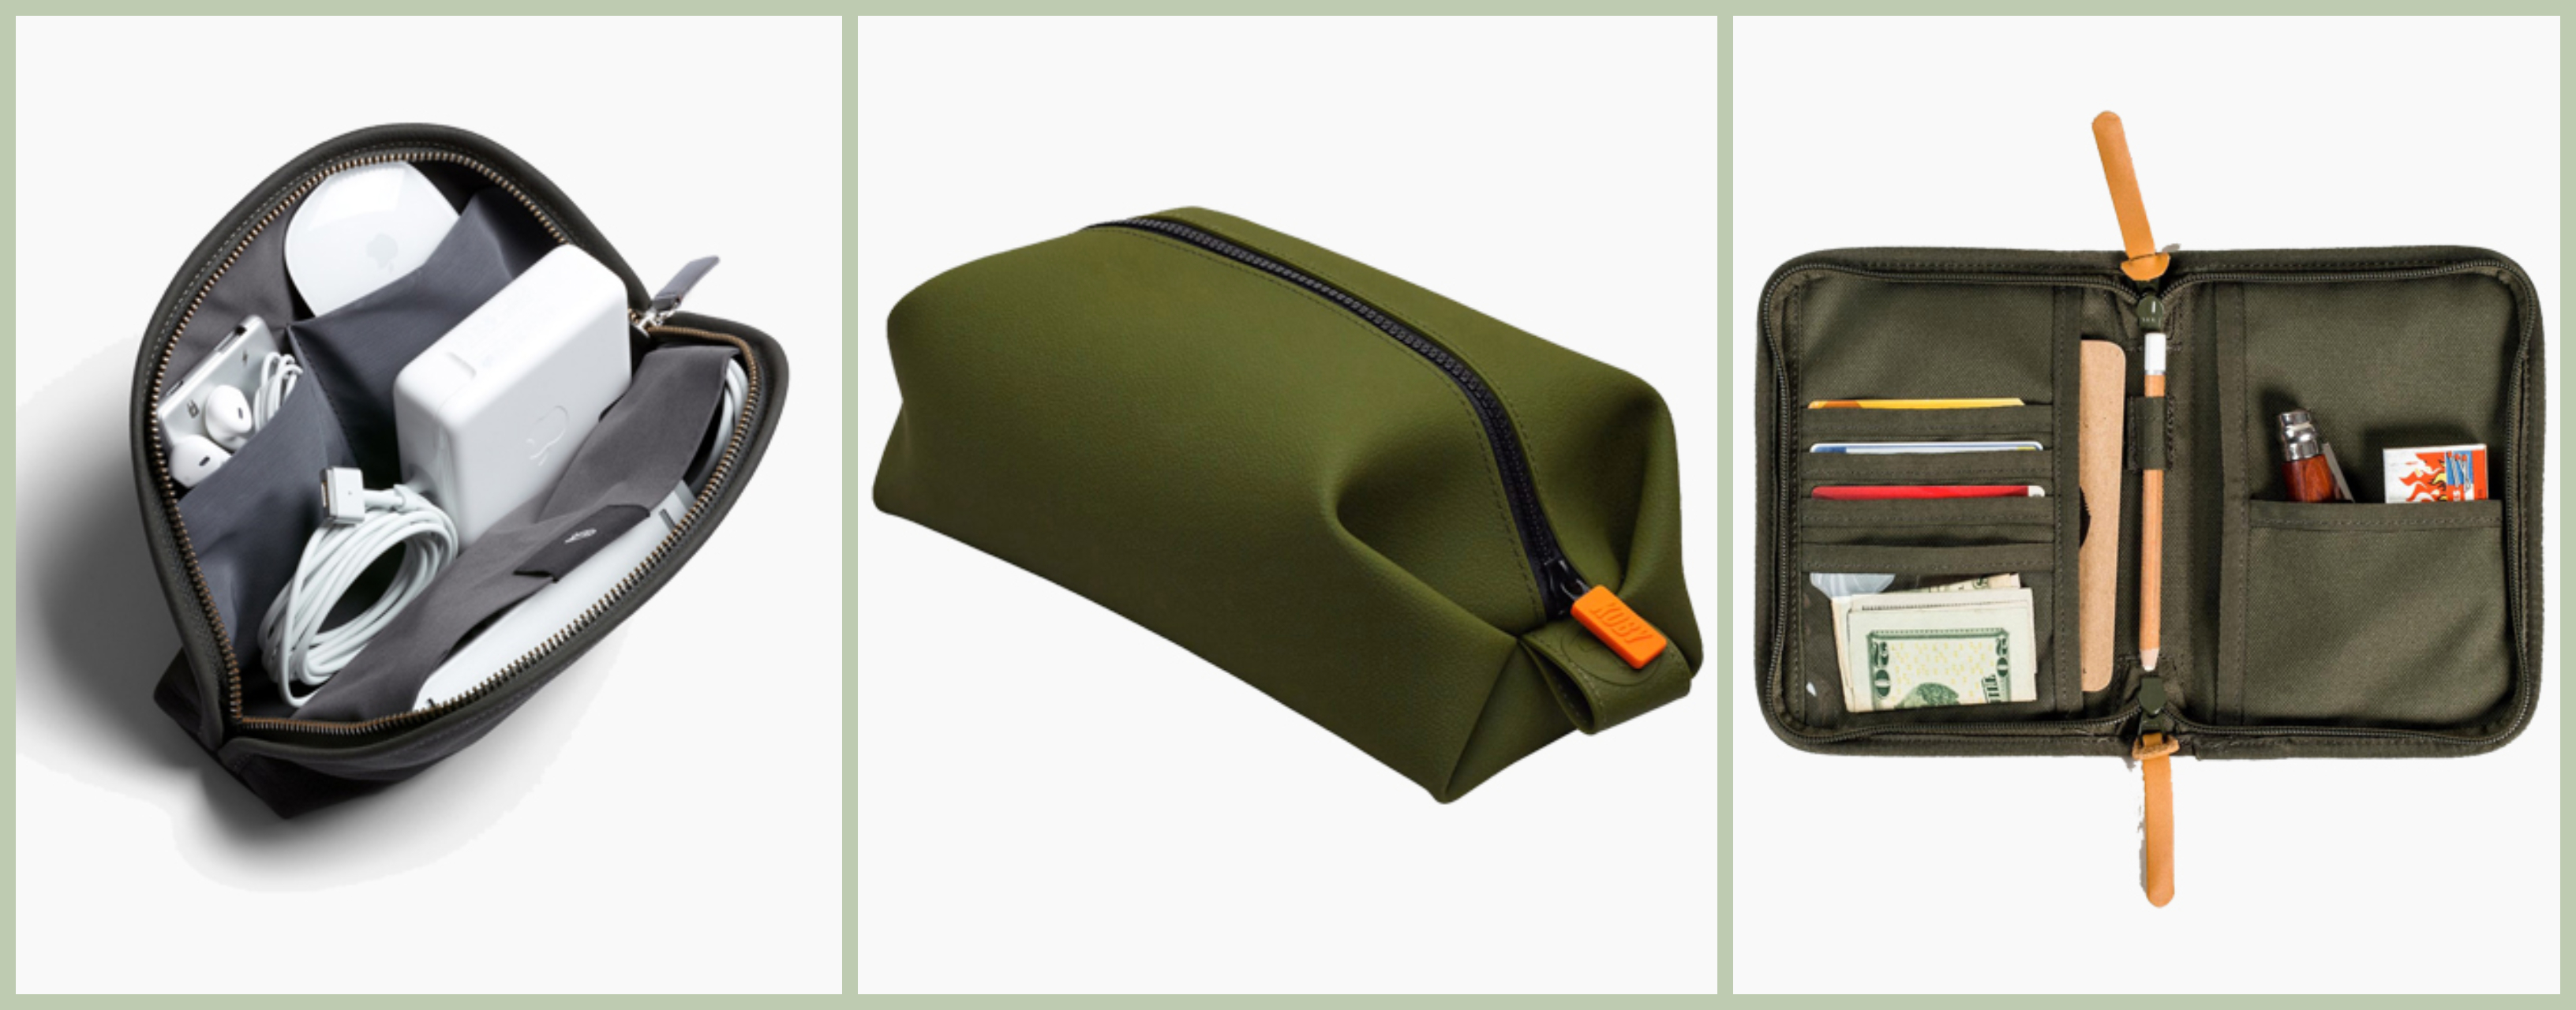 Bellroy Classic Pouch, Tooletries Koby Bag Olive, United By Blue Peaks Zip Case